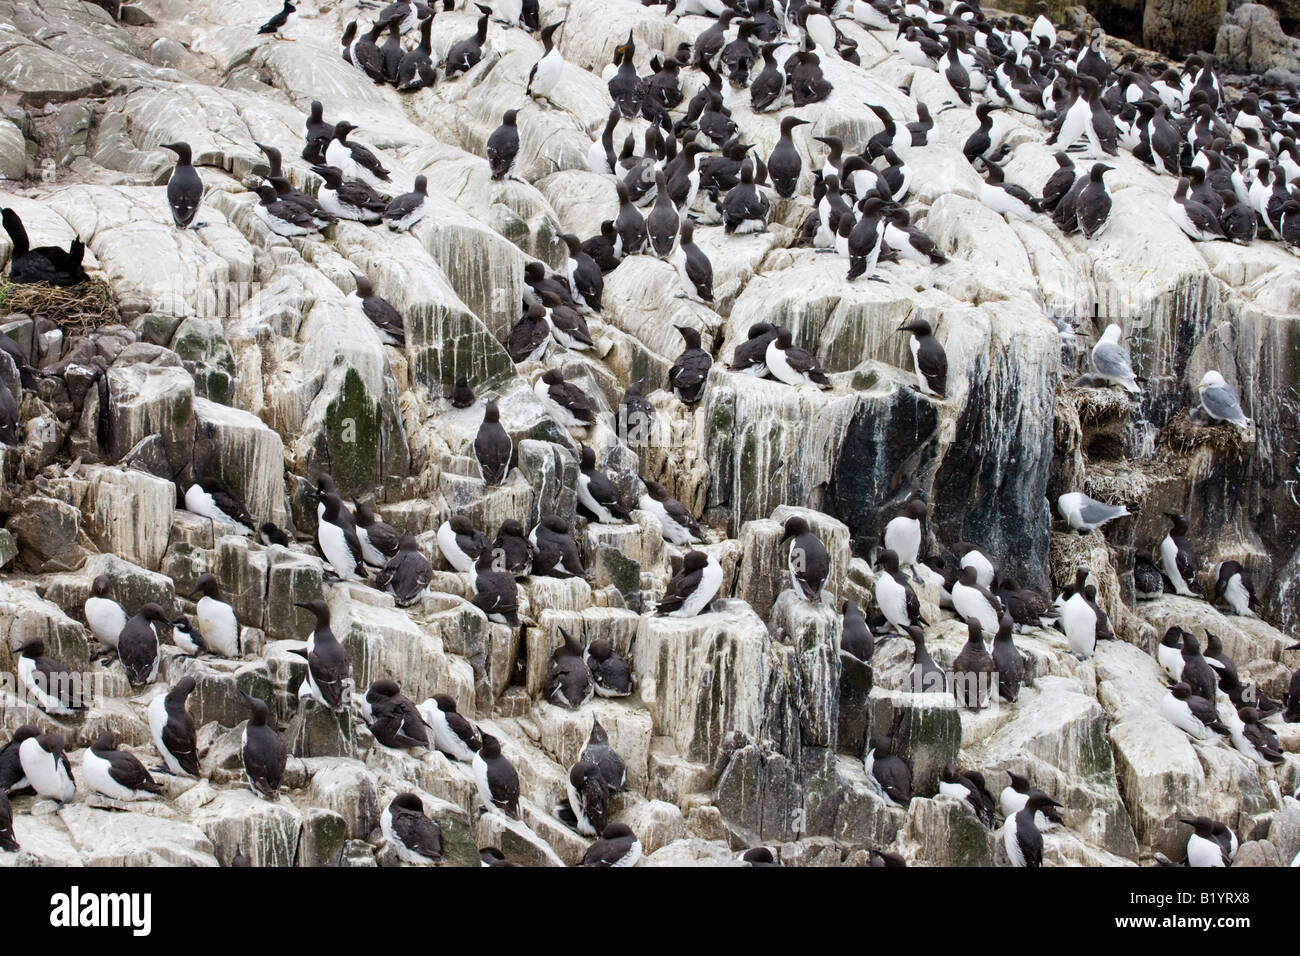 Large number group of Common Guillemots (Uria aalge) on a rock on an island Stock Photo